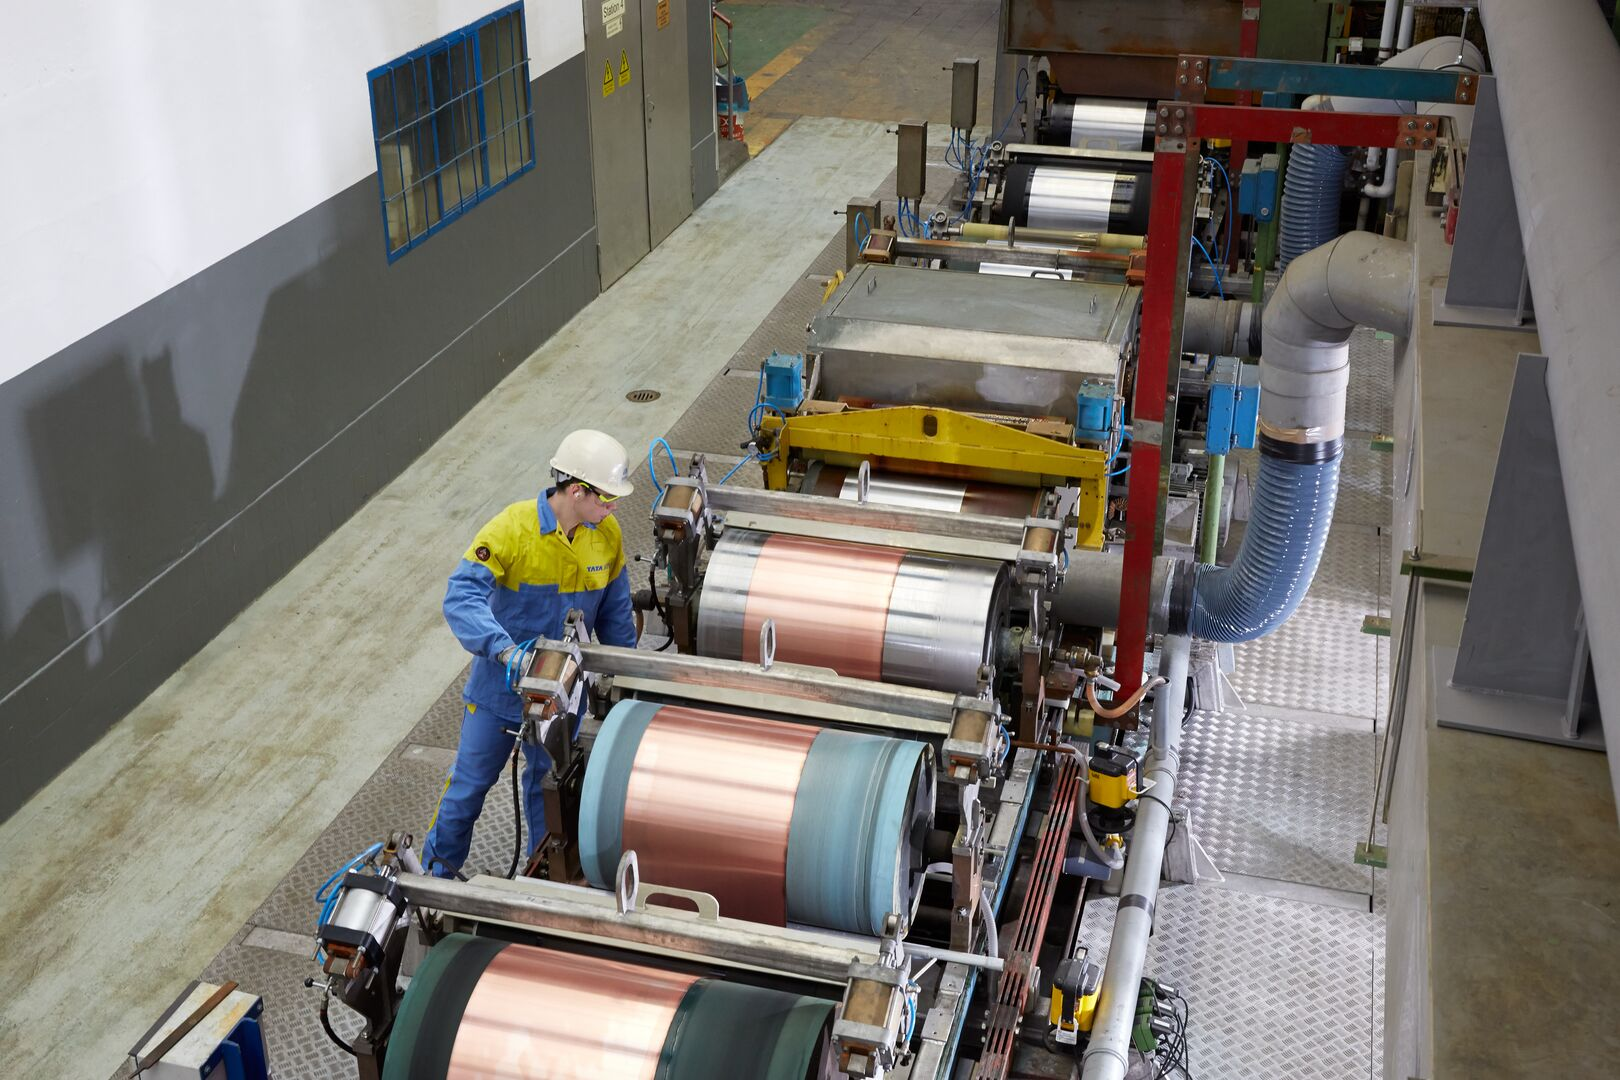 Copper plating line at Tata Steel manufacturing site